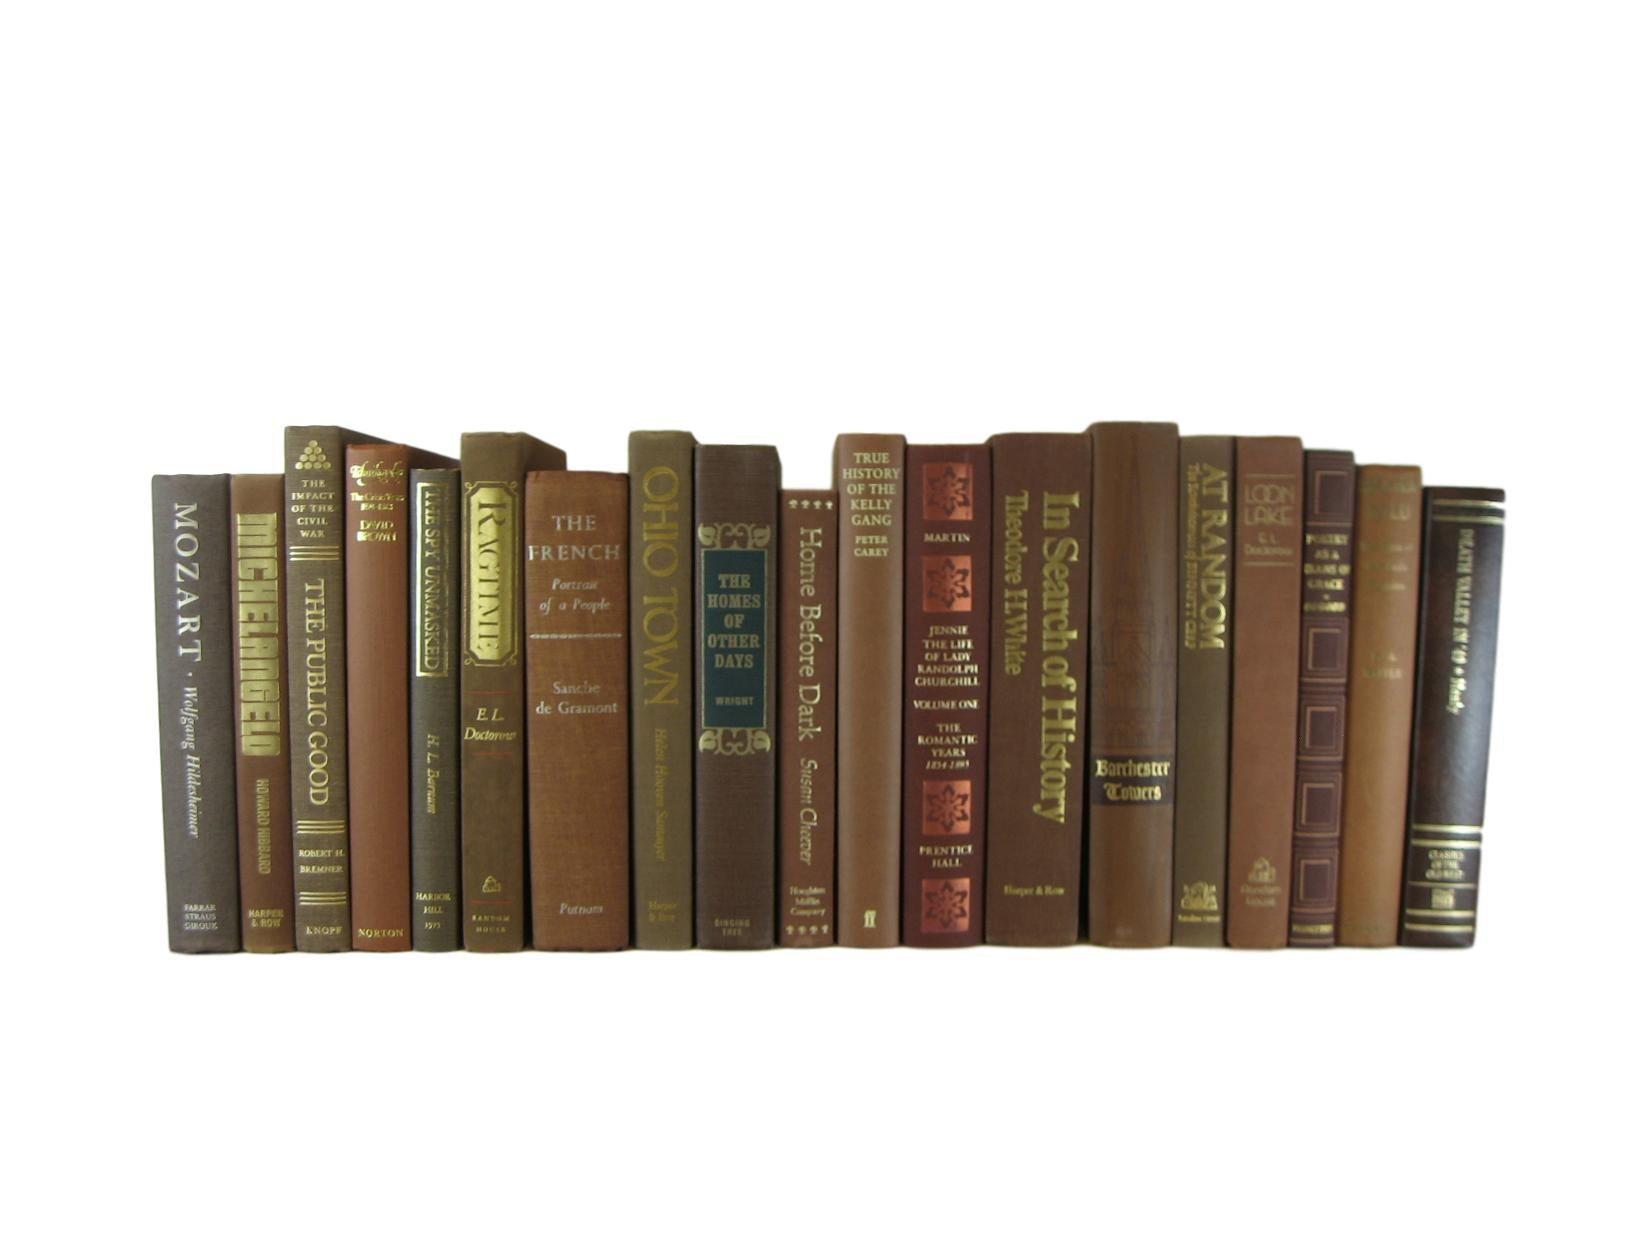 Brown Decorative Books for Display Sold by the Foot - Decades of Vintage